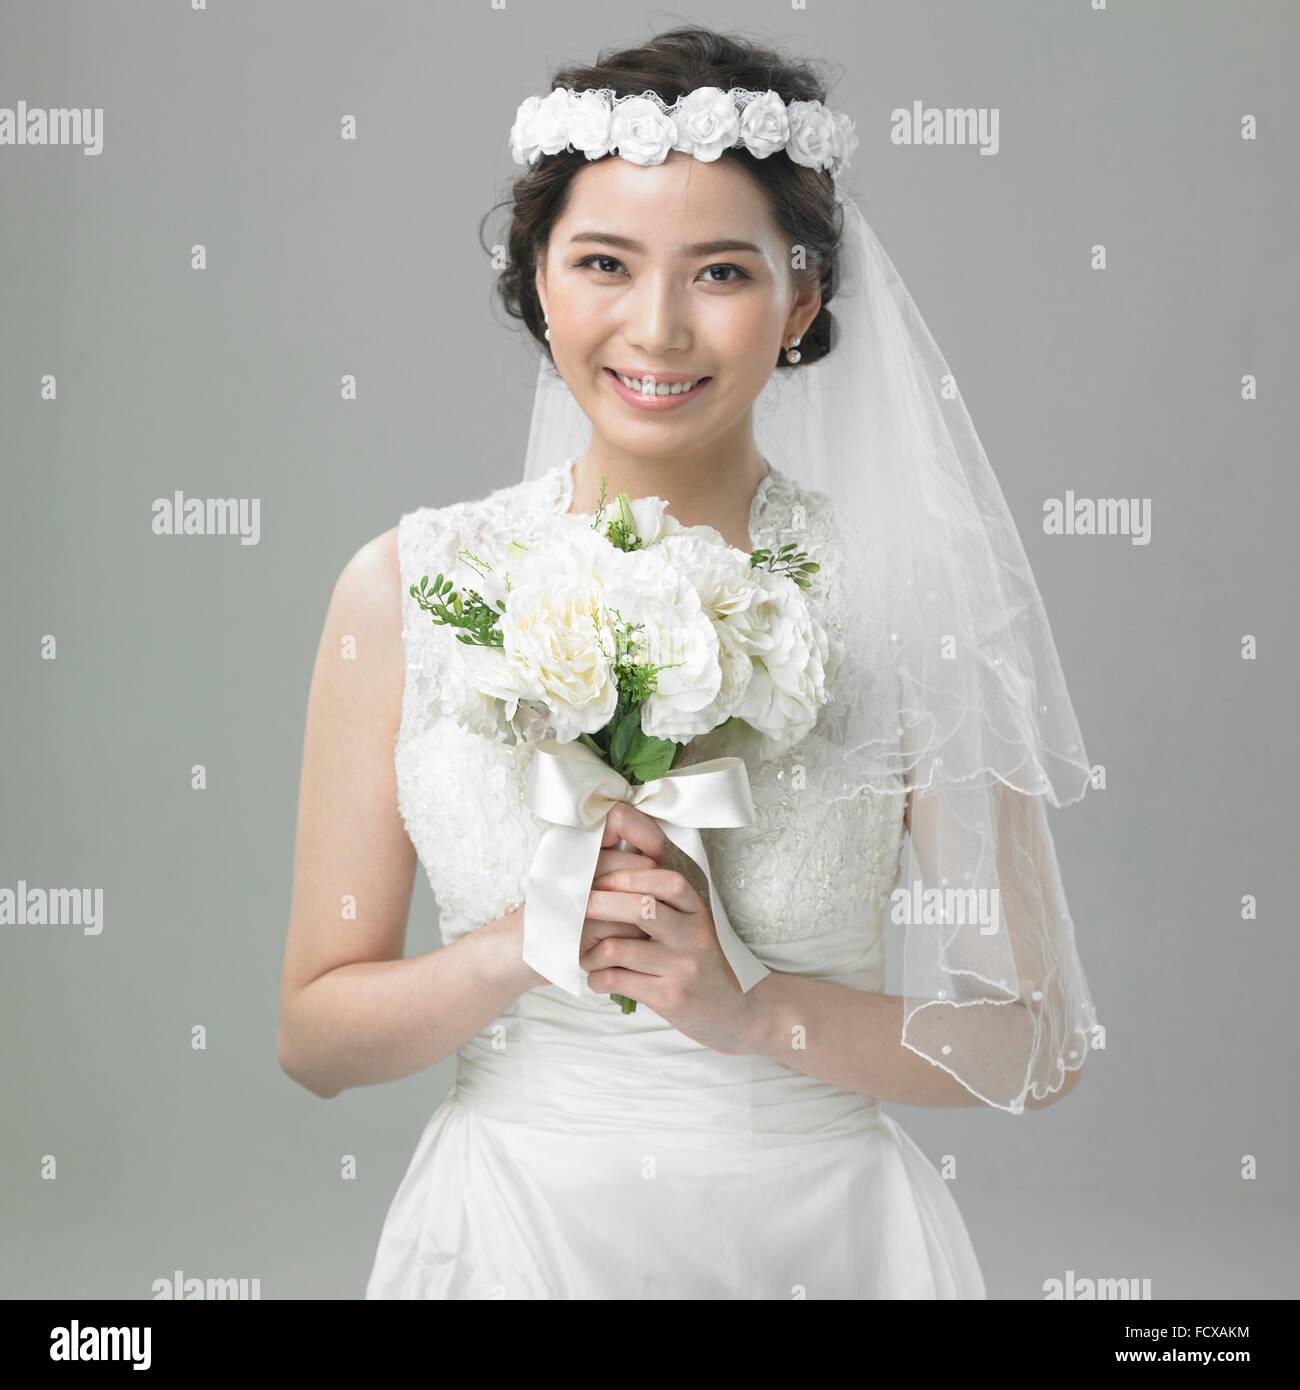 Bride In Flower Crown With Lace Veil Holding A Bouquet Stock Photo